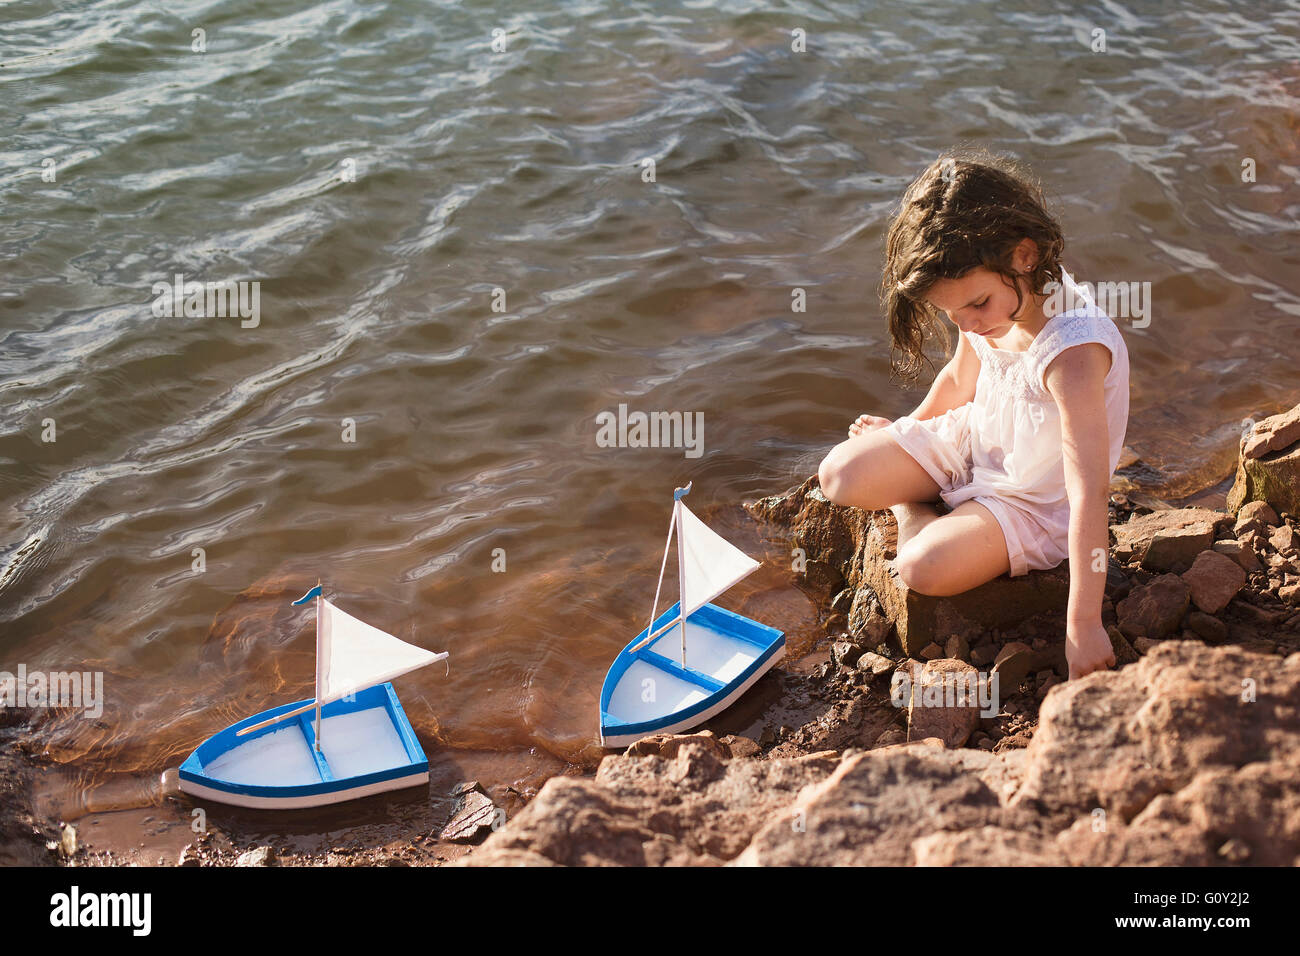 Girl sitting on rocks by lake playing with toy boats Stock Photo ...